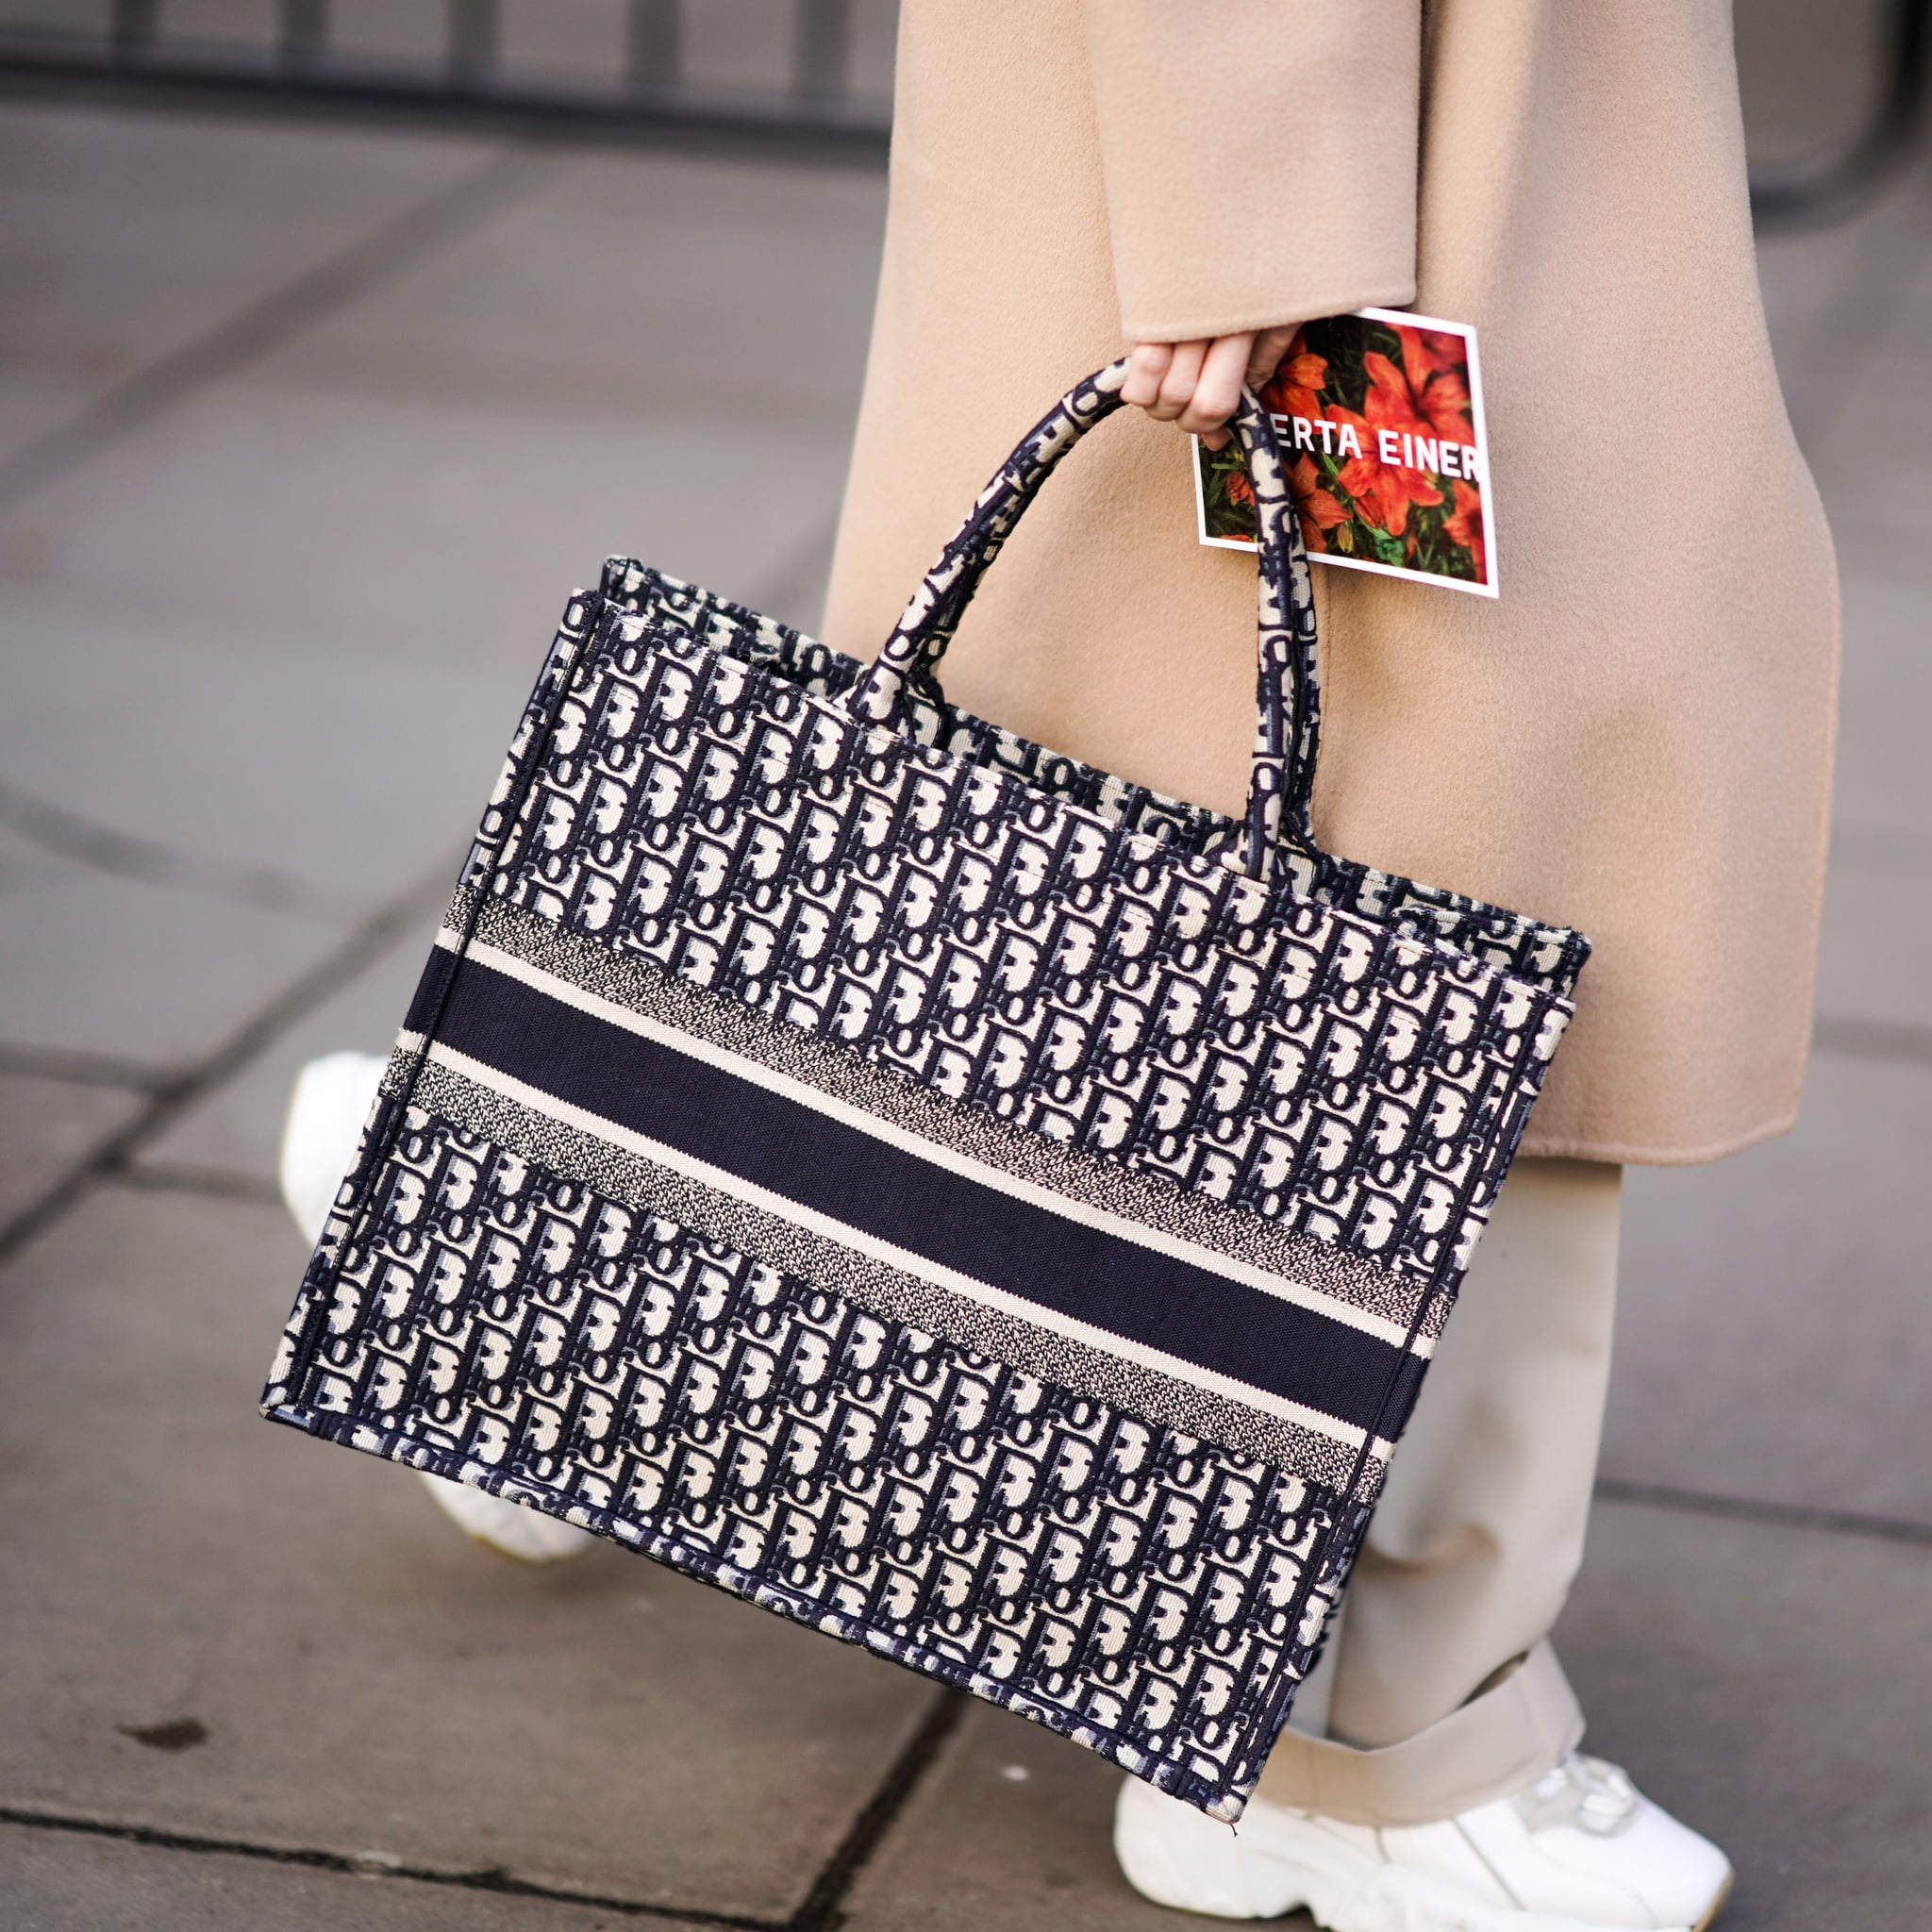 Our Editors has reviewed 20 best tote bags for work from